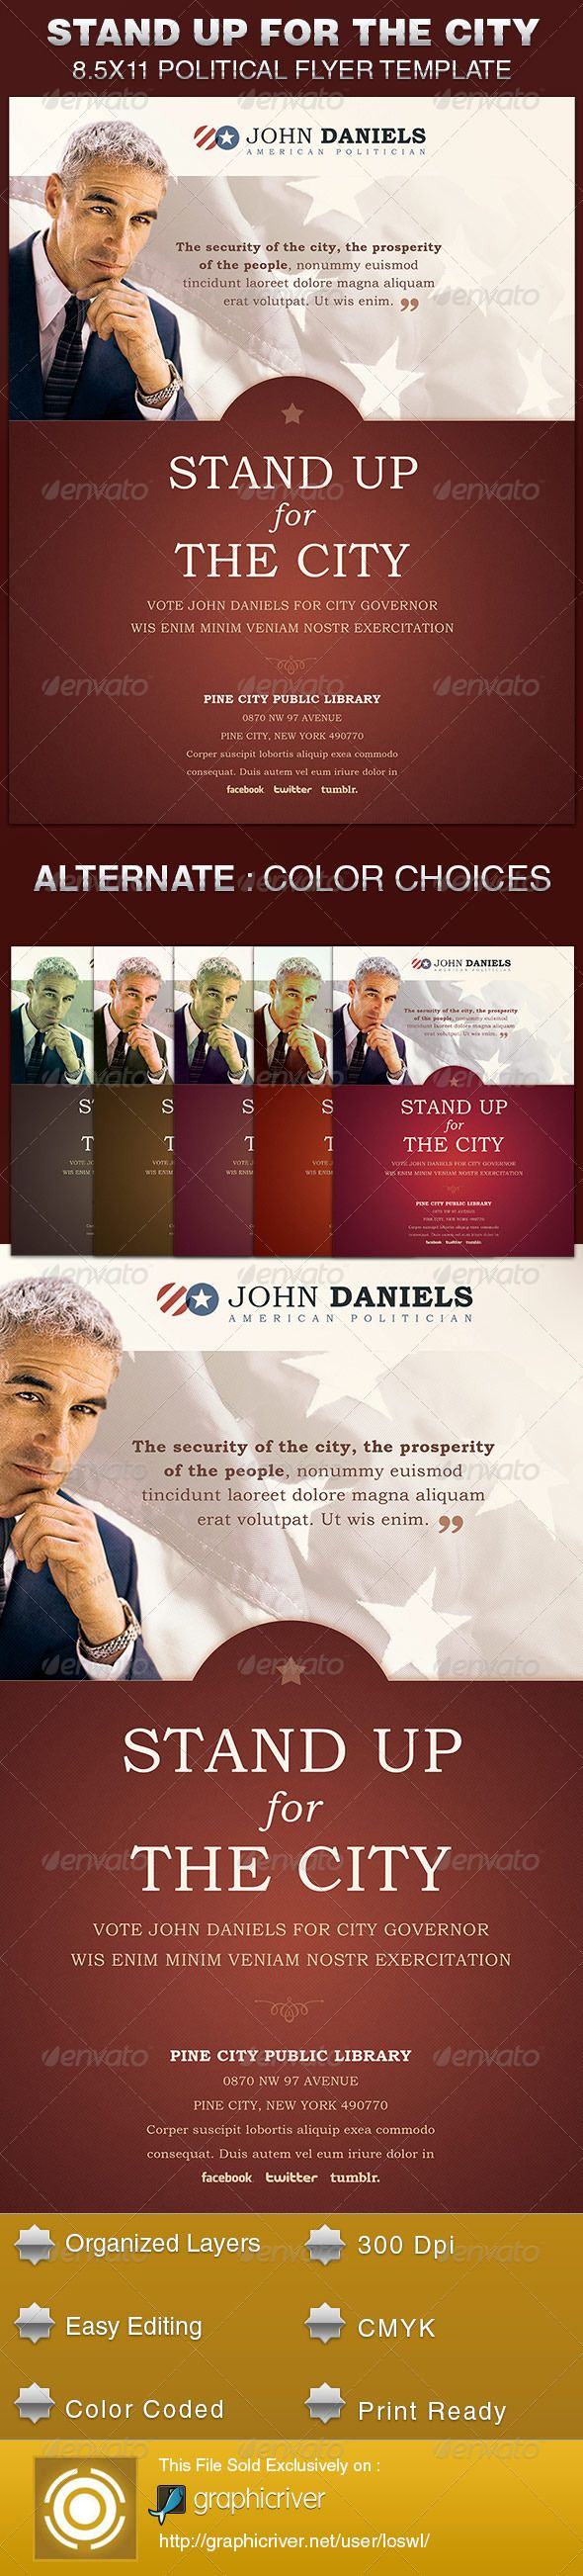 the stand up for the city political flyer template is sold. Black Bedroom Furniture Sets. Home Design Ideas